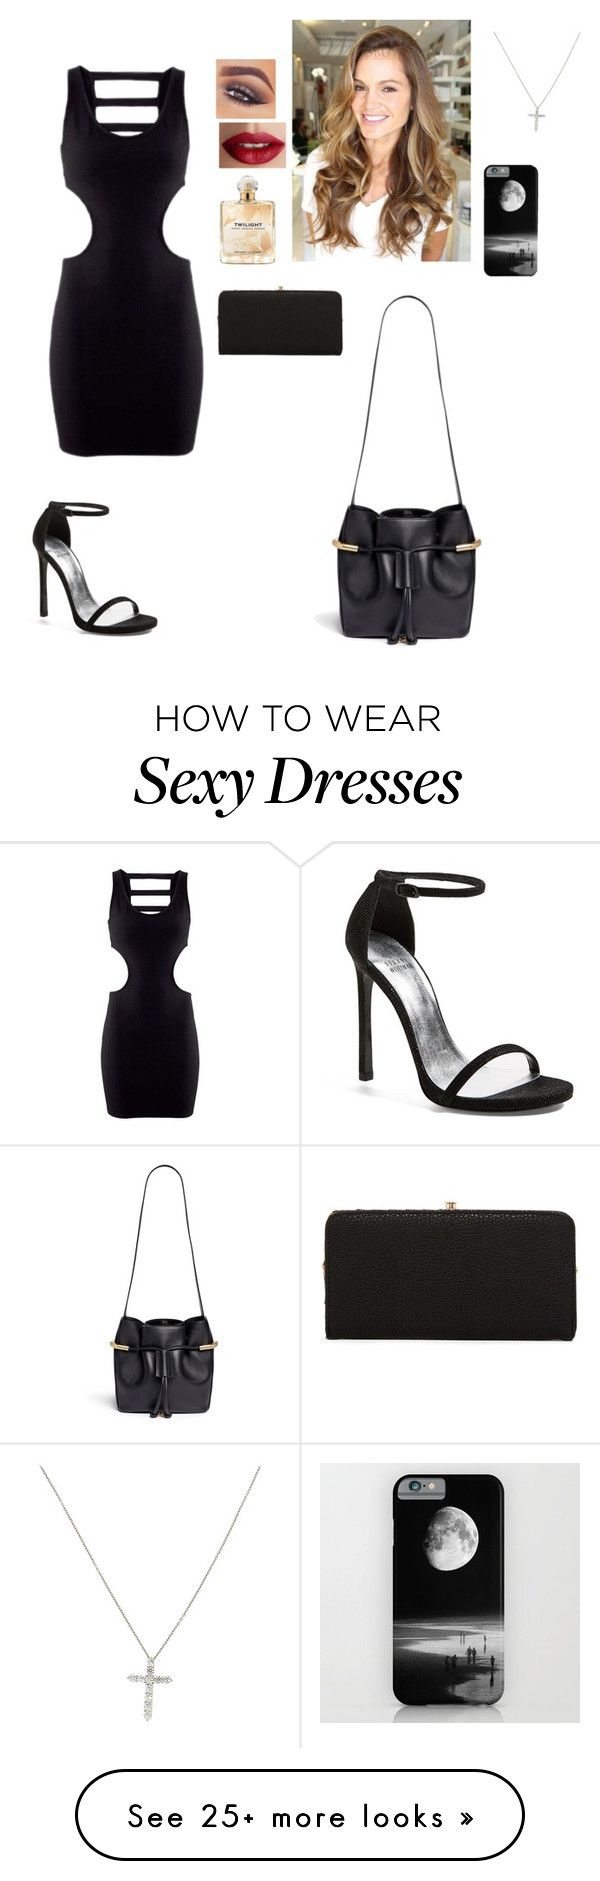 """Untitled #531"" by misswinters on Polyvore featuring Stuart Weitzman, Chloé, Urban Expressions, Sarah Jessica Parker, TheBalm and Mary Kay"